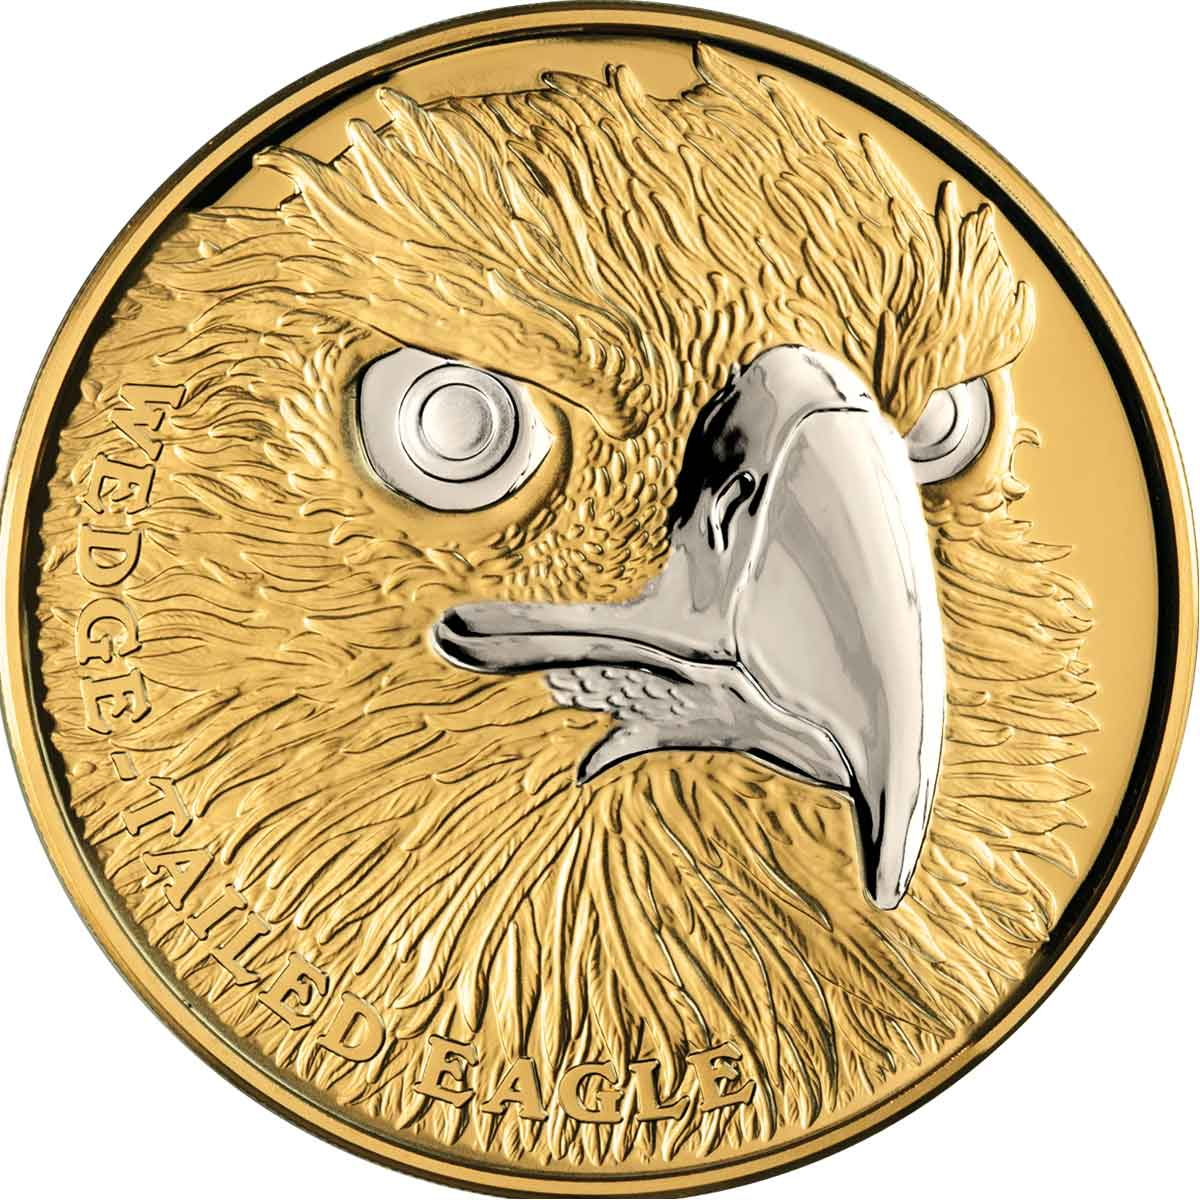 2019 Wedge Tailed Eagle Niue_2019_Wildlife_Up_Close_1_Wedge-Tailed_Eagle_$100_1_Troy_Oz_Pure_Gold_Proof_with_Platinum_Plating_obverse